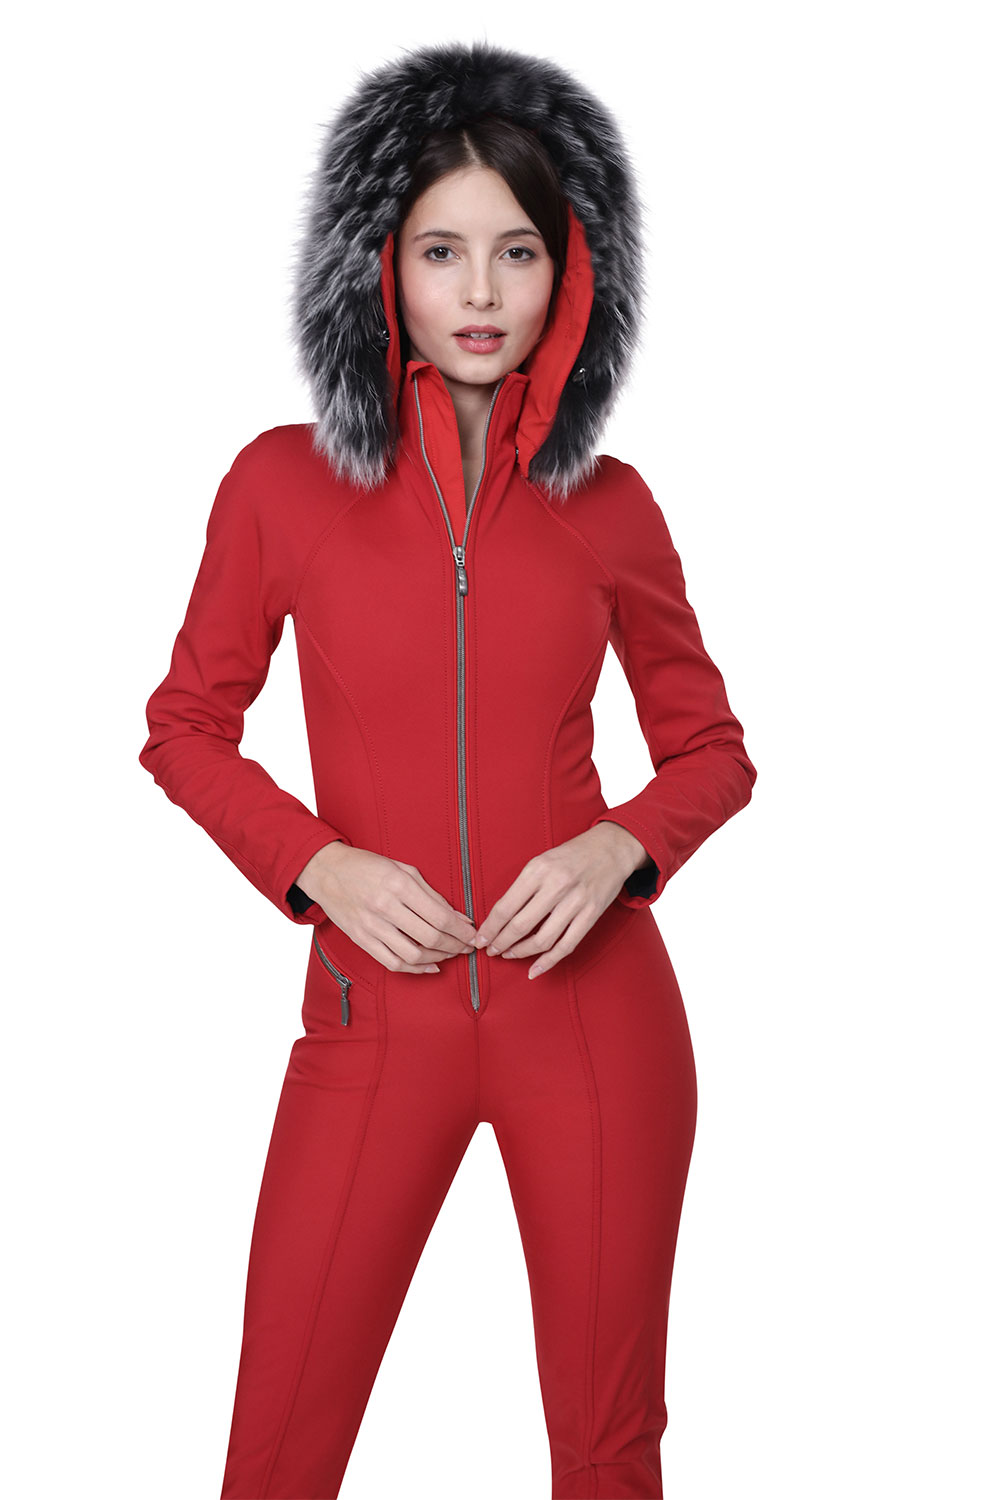 One Piece Cat Suits for skiing